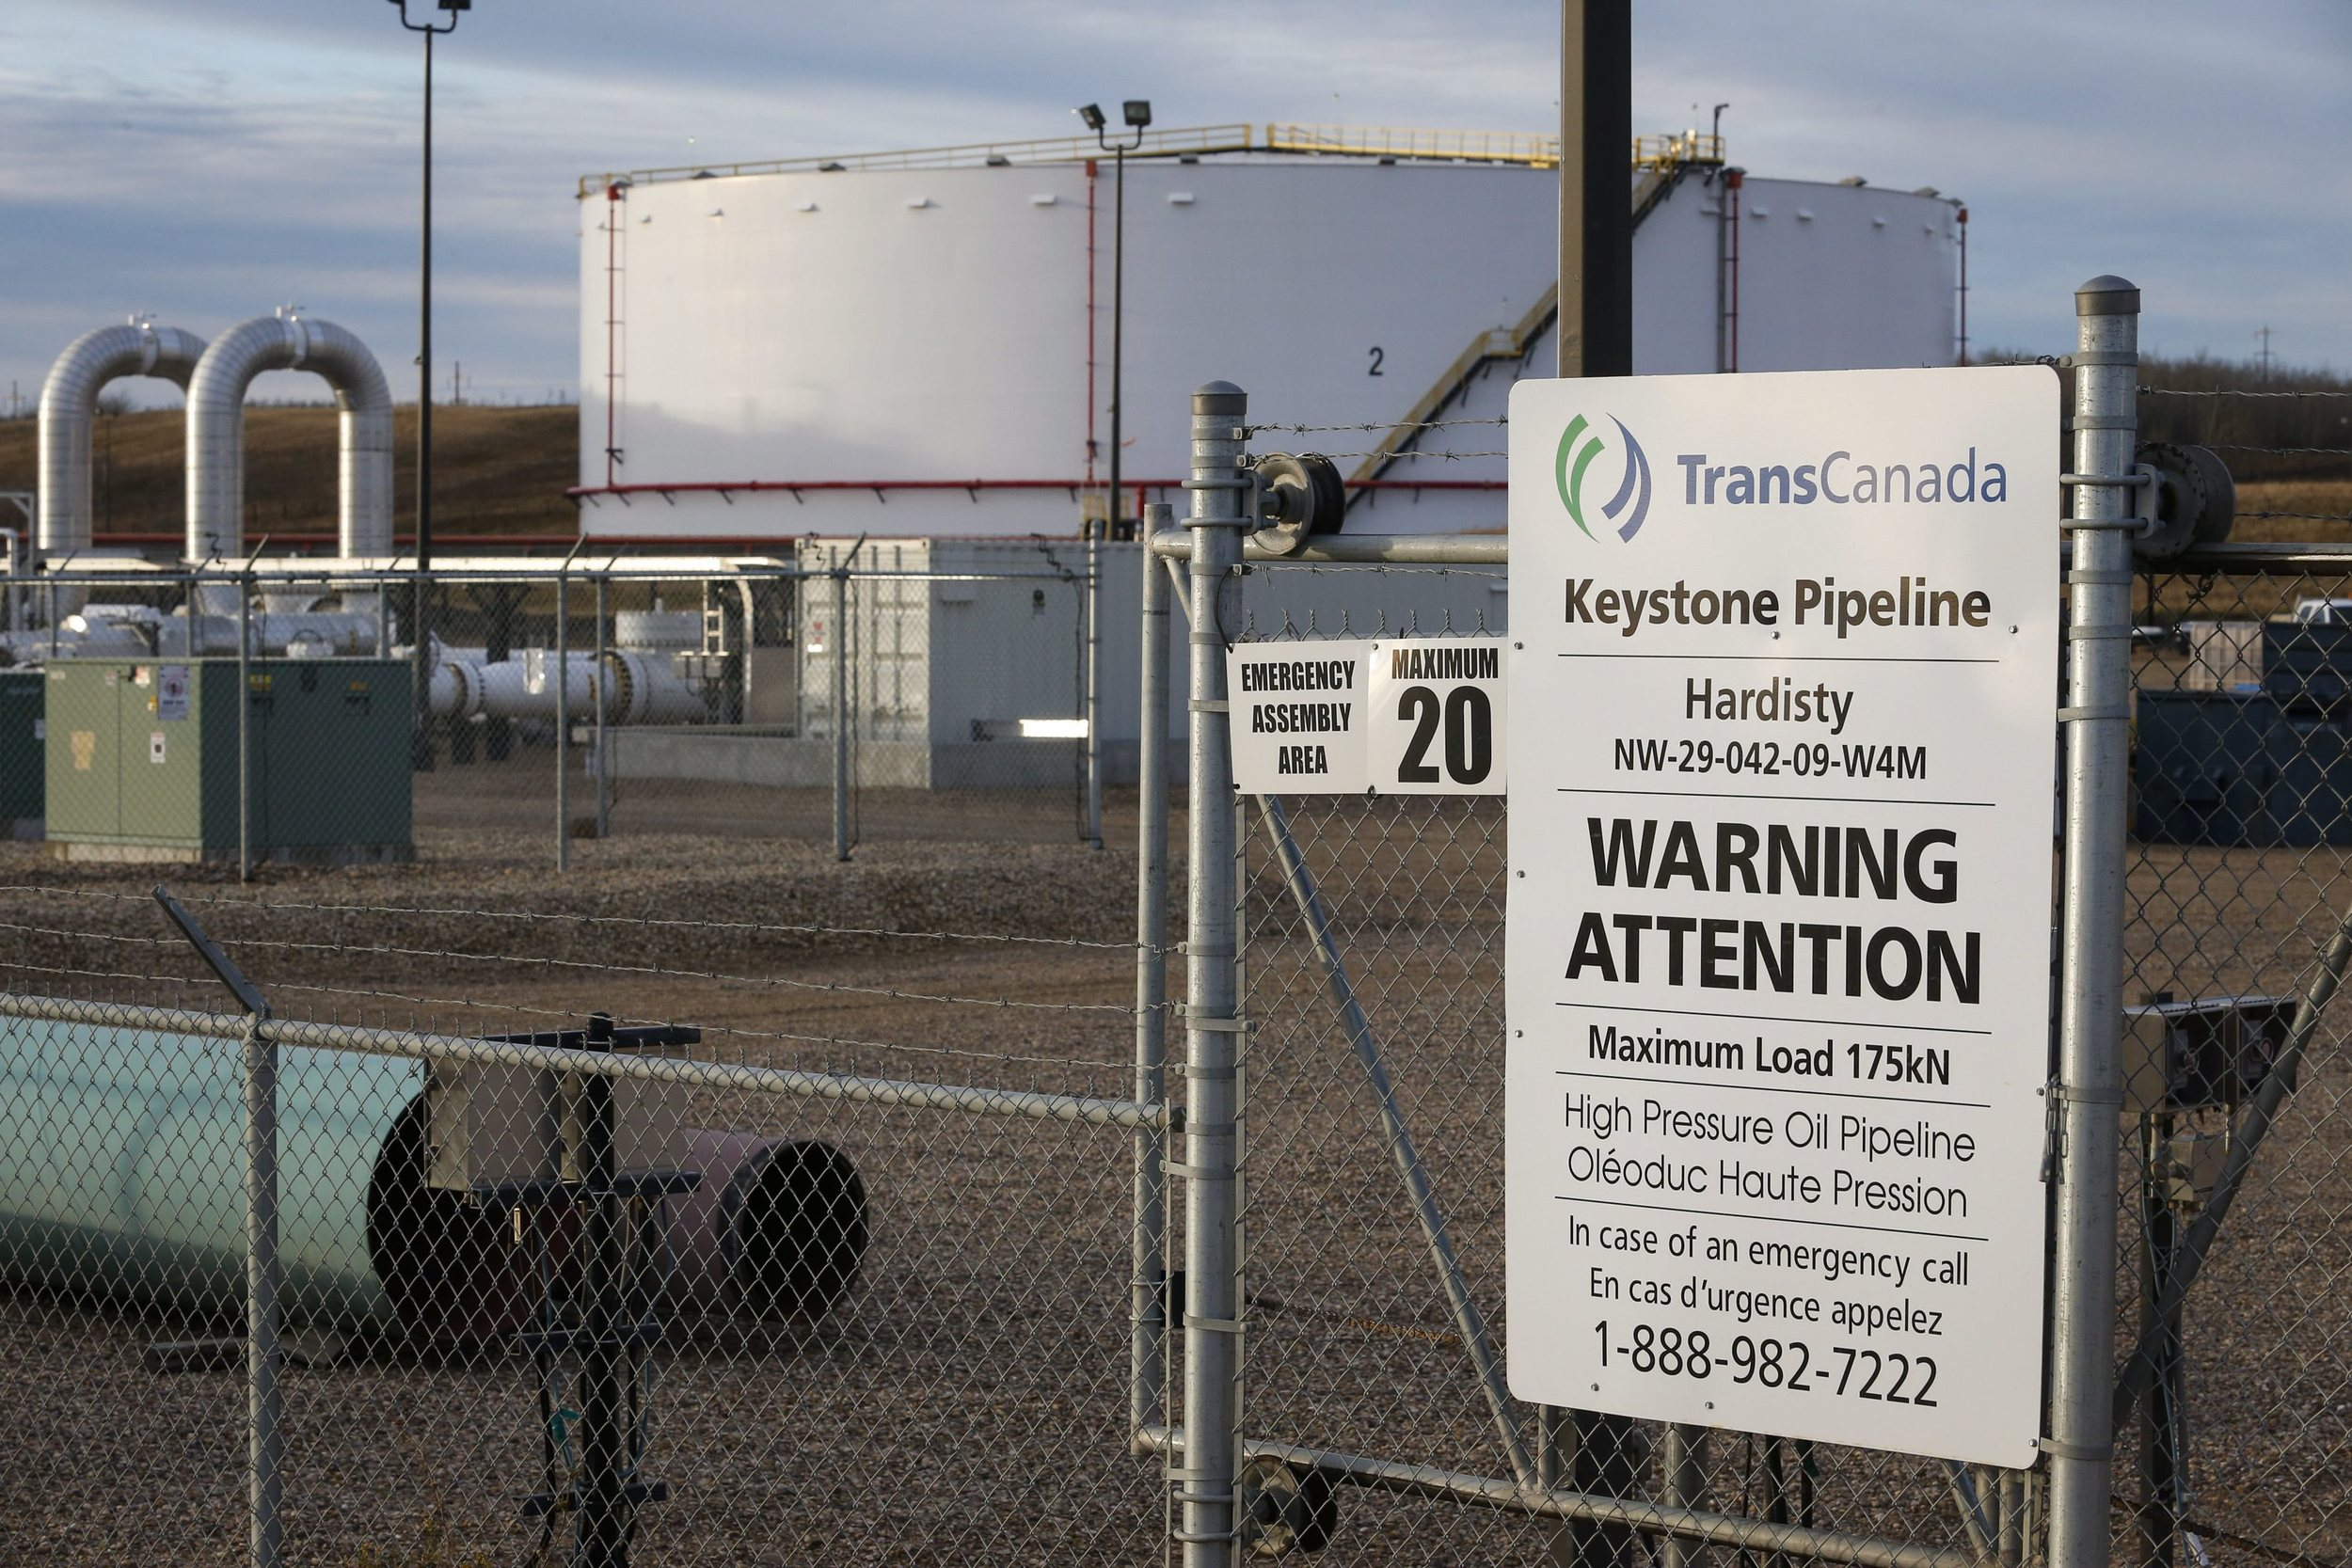 TransCanada's Keystone pipeline facilities in Hardisty, Alberta, Canada, on Friday, Nov. 6, 2015. Following the Obama administration's rejection of the Keystone XL pipeline, the oil industry faces the tricky task of making sure the crude oil targeted for the pipeline still gets where it needs to go. (Jeff McIntosh/The Canadian Press via AP)